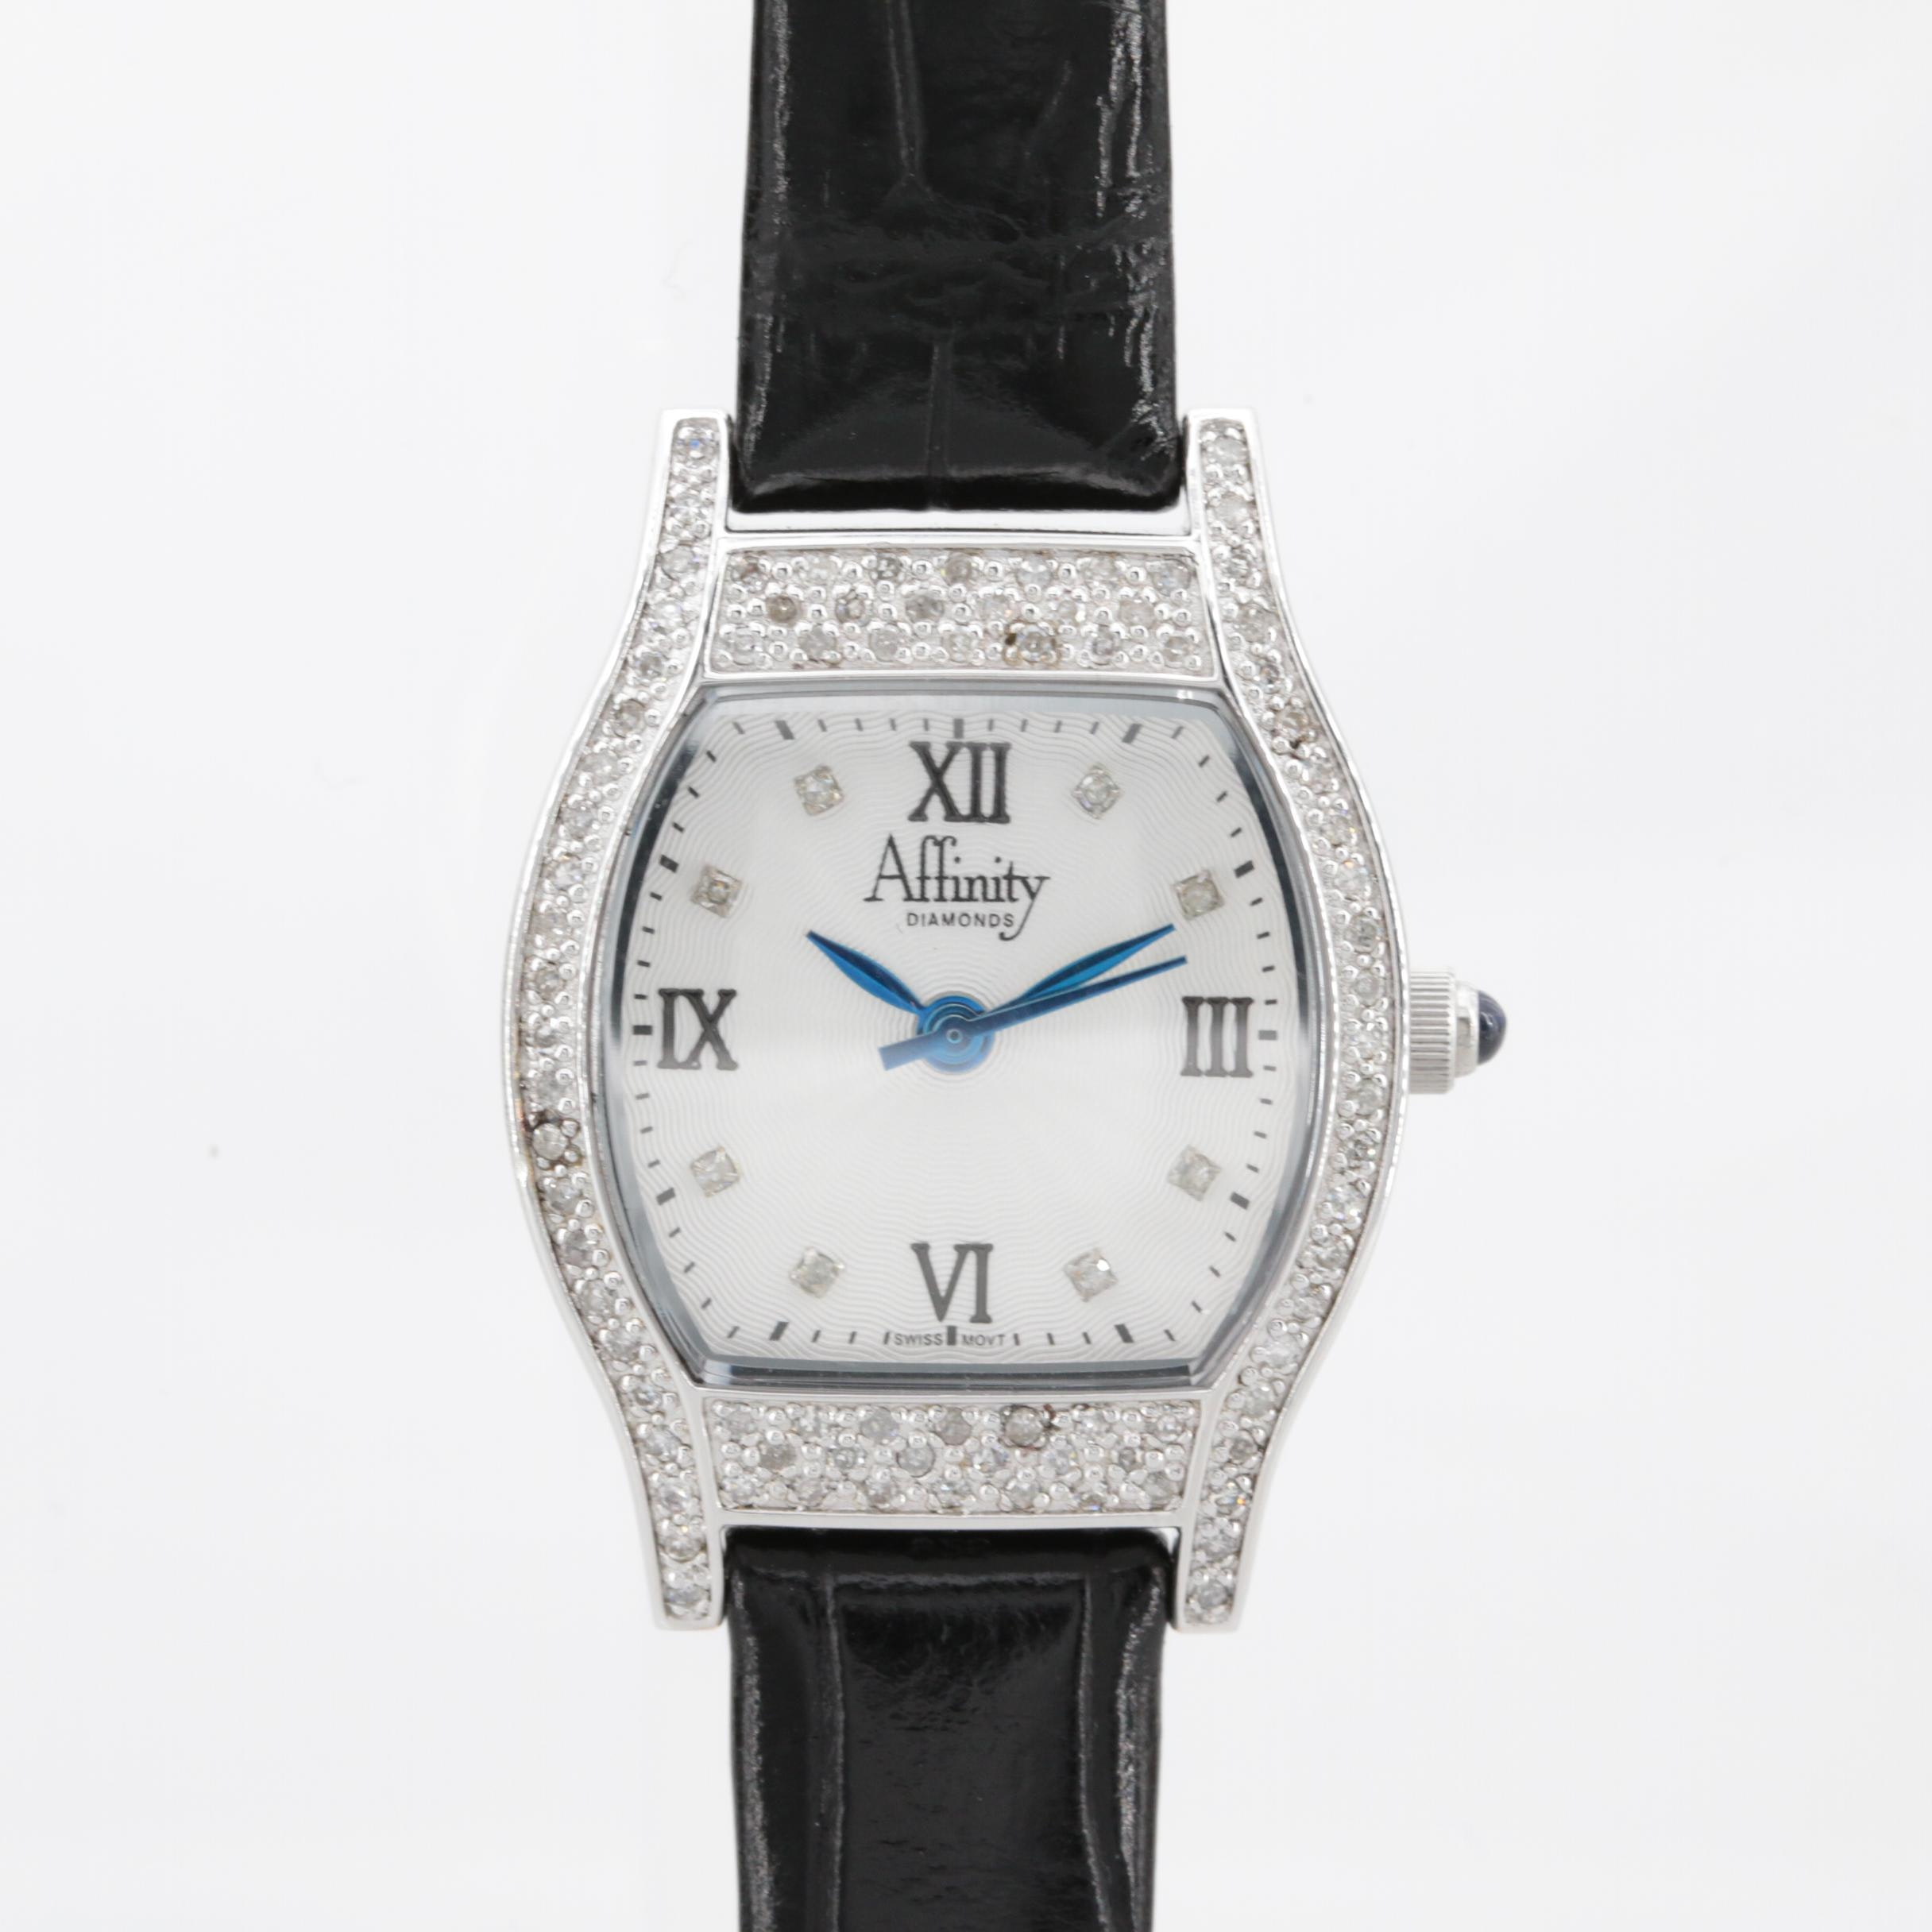 Affinity Sterling Silver Quartz Wristwatch With Diamond Dial and Bezel